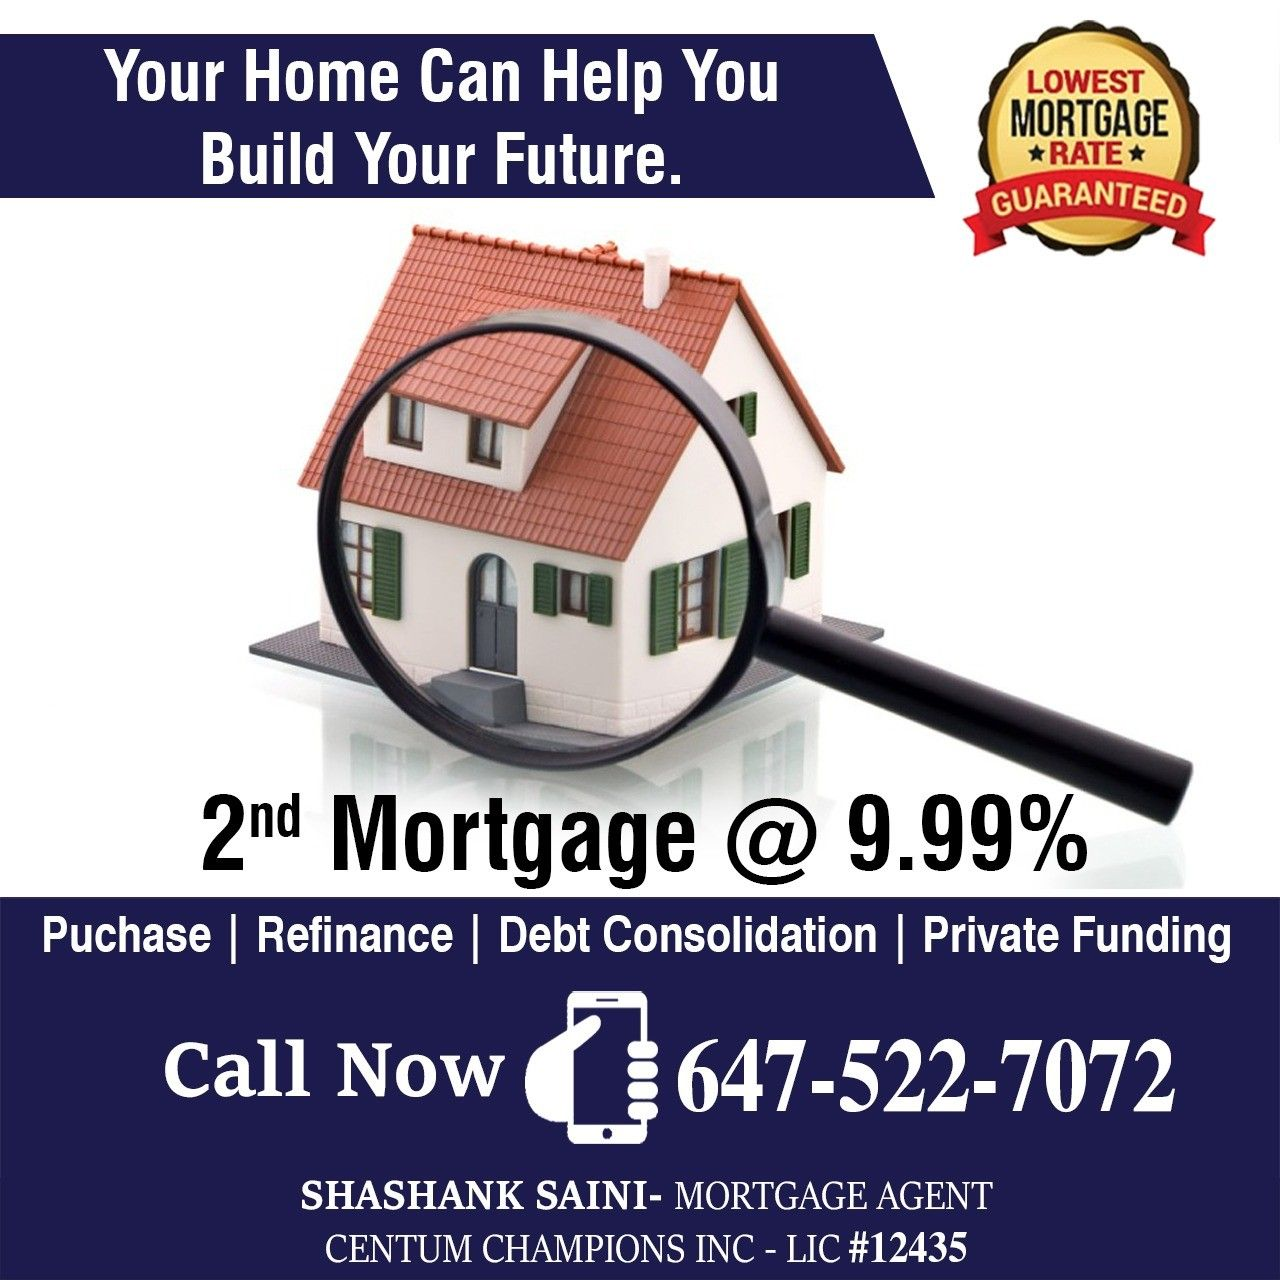 Lowest Mortgage Rate Guaranteed With Low Income Bad Credit Debt Consolidation Pay Off Cred In 2020 Lowest Mortgage Rates Refinance Mortgage Current Mortgage Rates